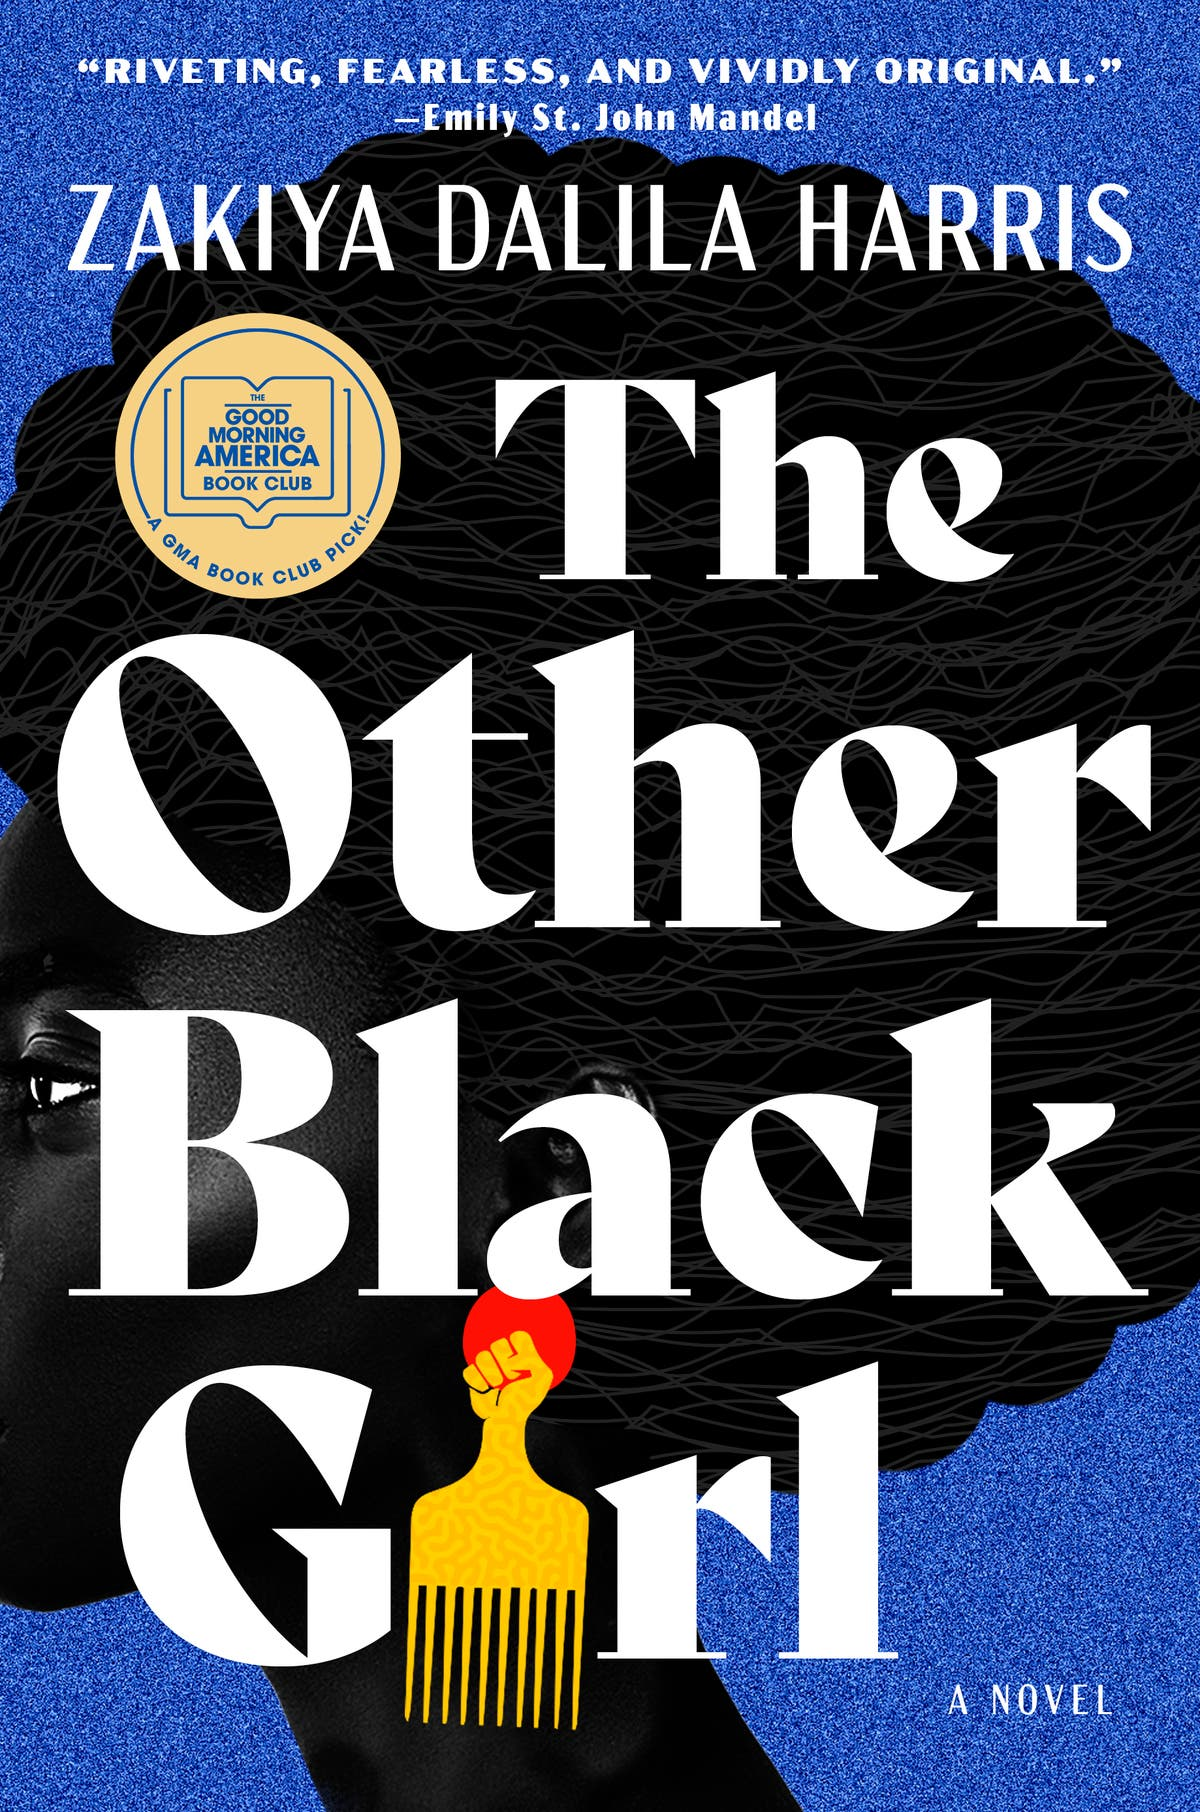 Review: 'The Other Black Girl' a bold, poignant debut novel